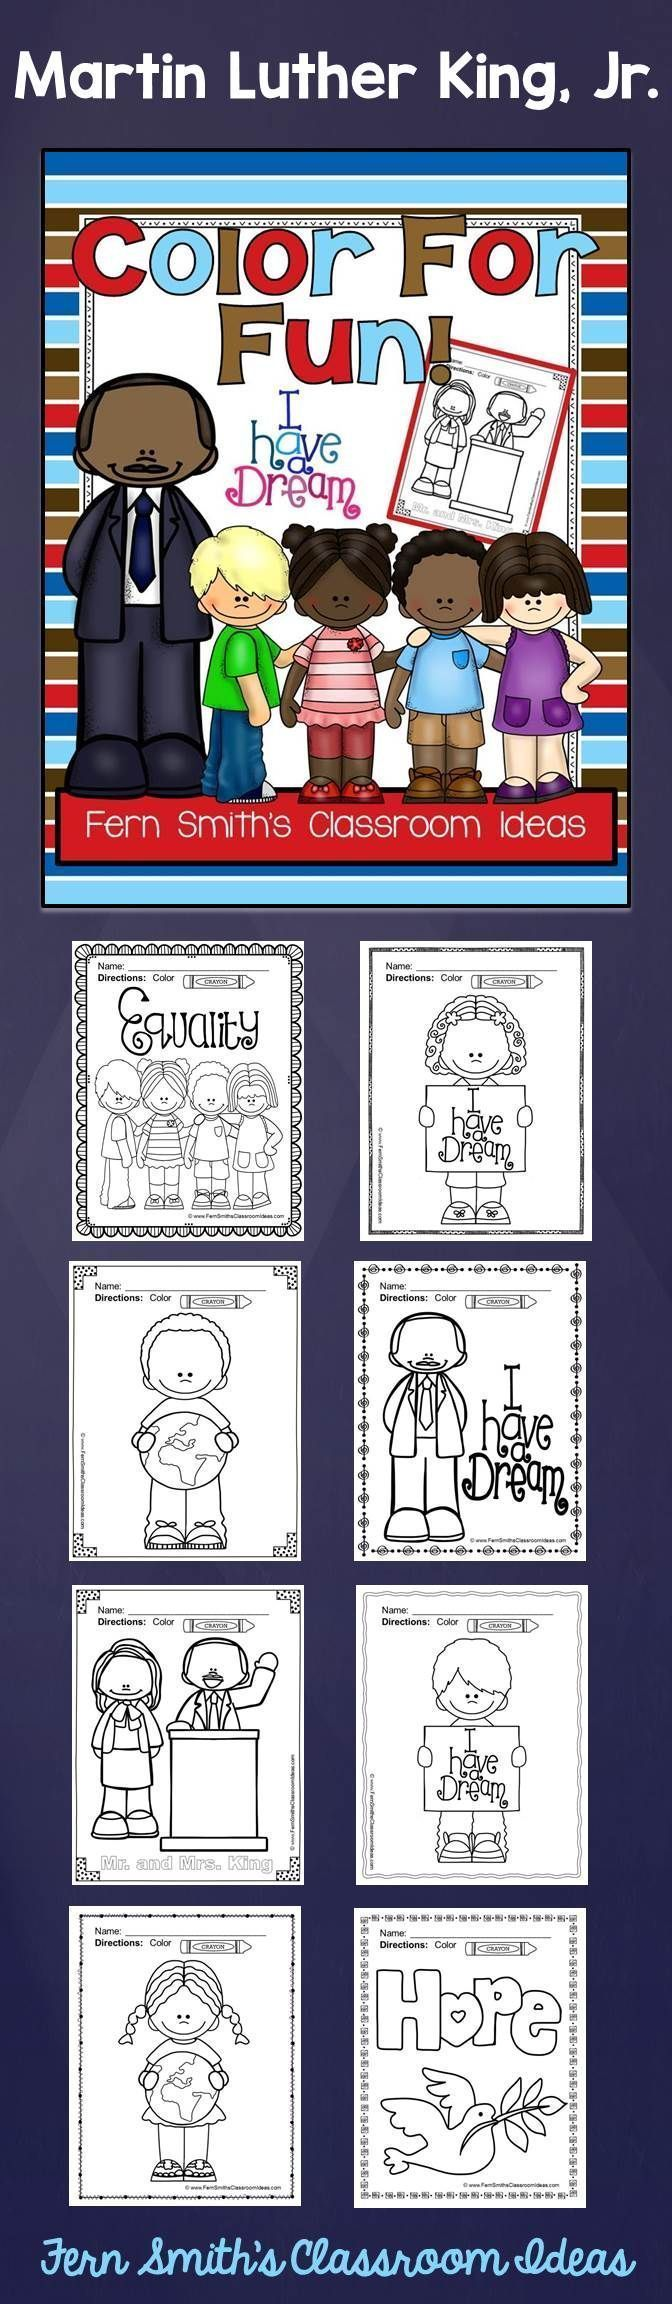 Printable coloring pages martin luther -  Free Martin Luther King Jr Color For Fun Printable Coloring Pages Freebie